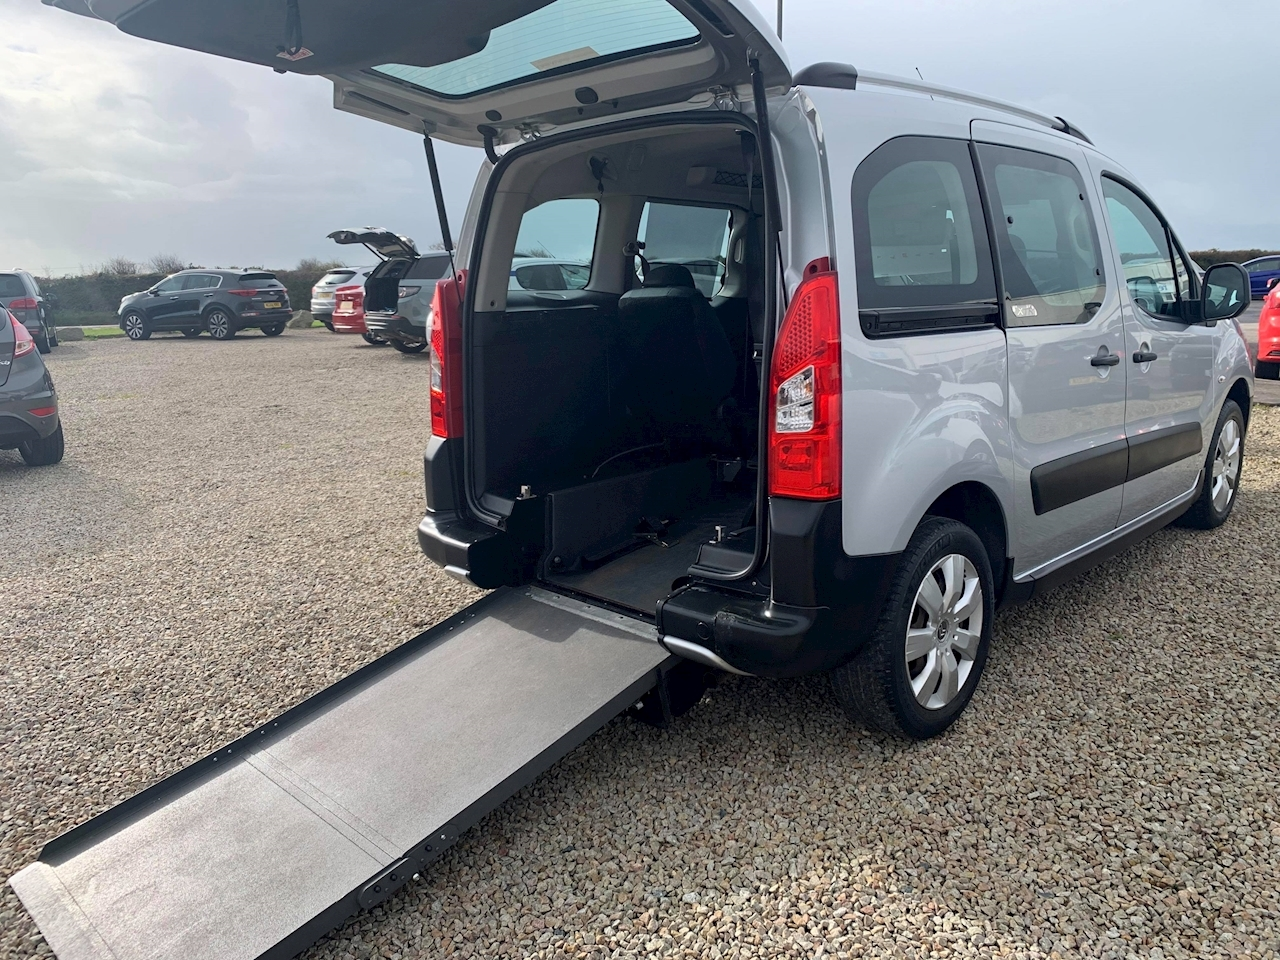 Citroen Berlingo Multispace Hdi Xtr Mpv 1.6 Manual Diesel